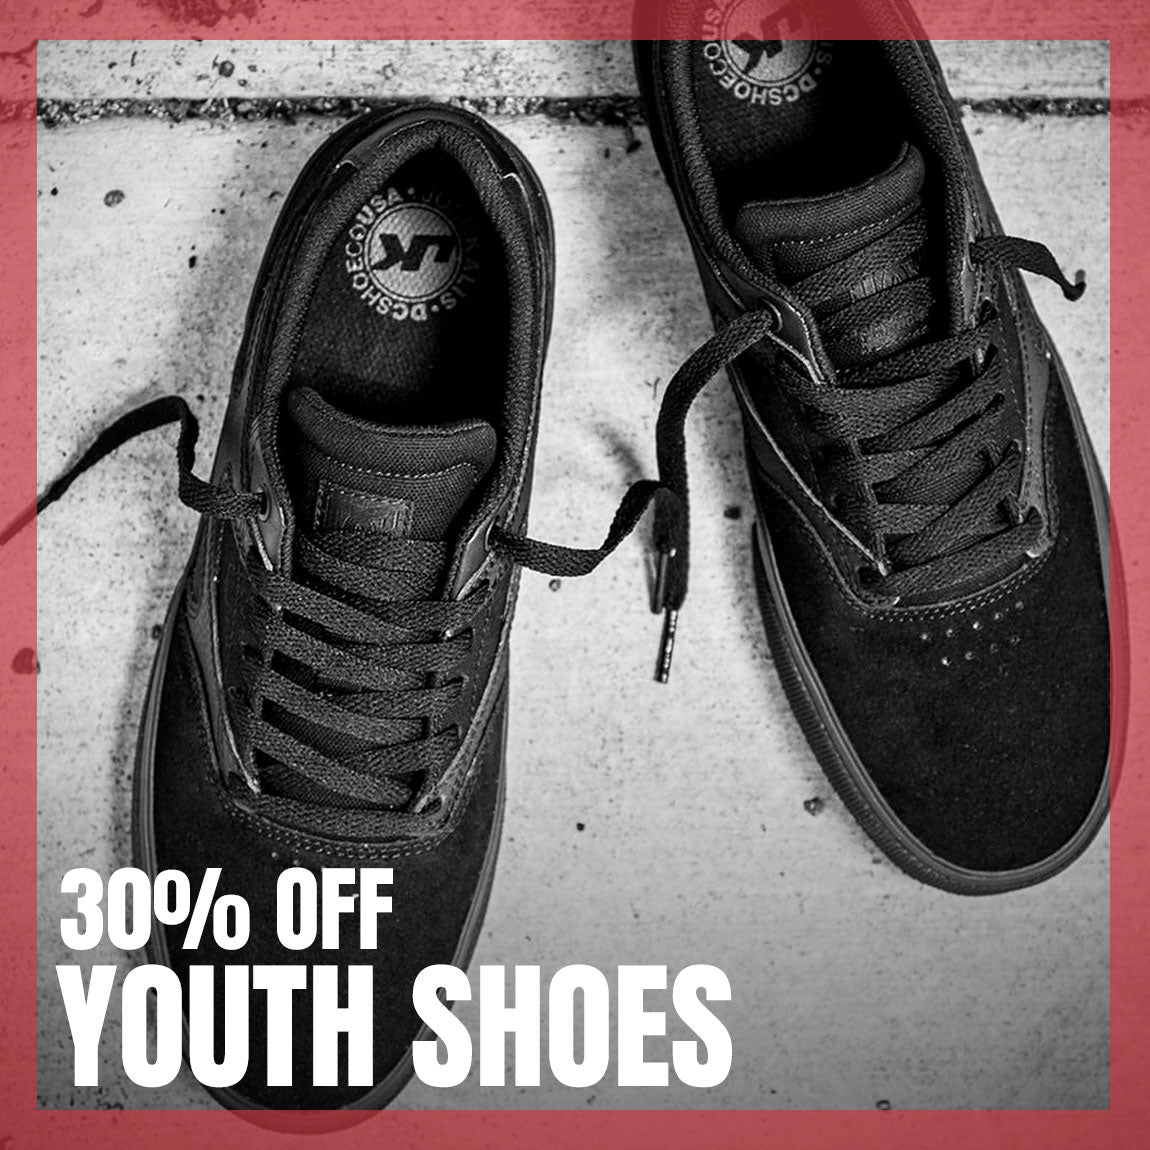 YOUTH SHOES